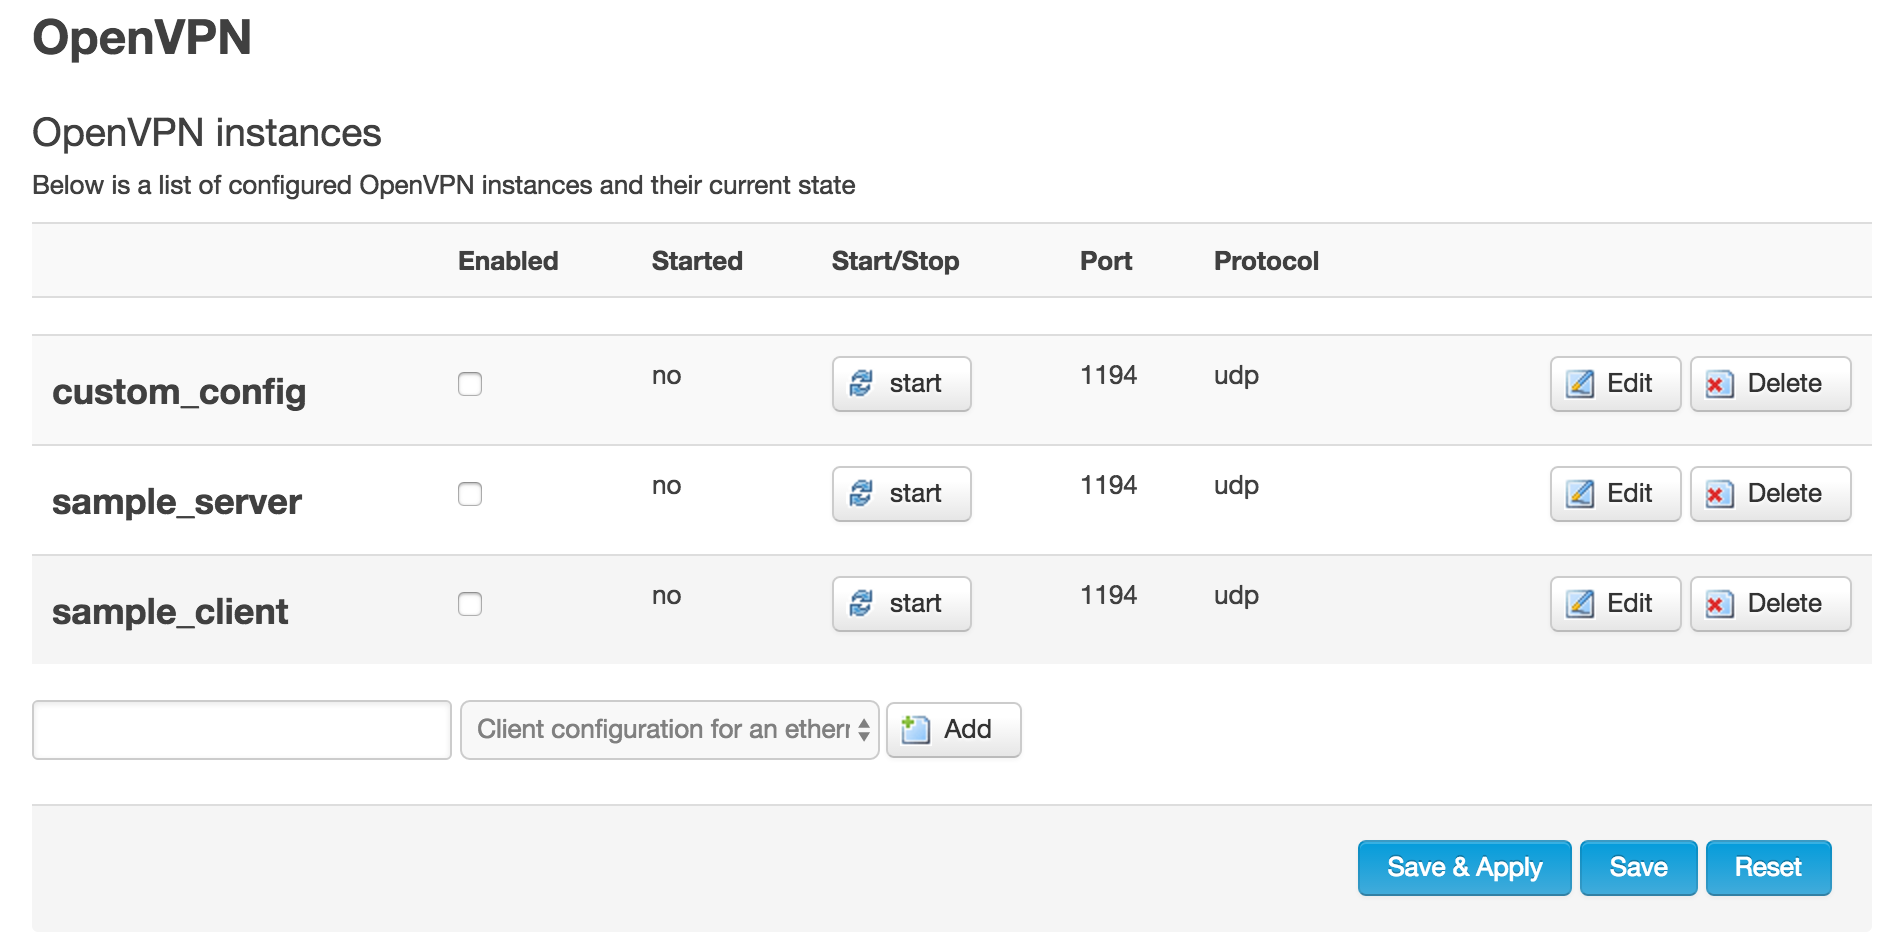 Confusing interface to configure another OpenVPN Service on the Anonabox Pro